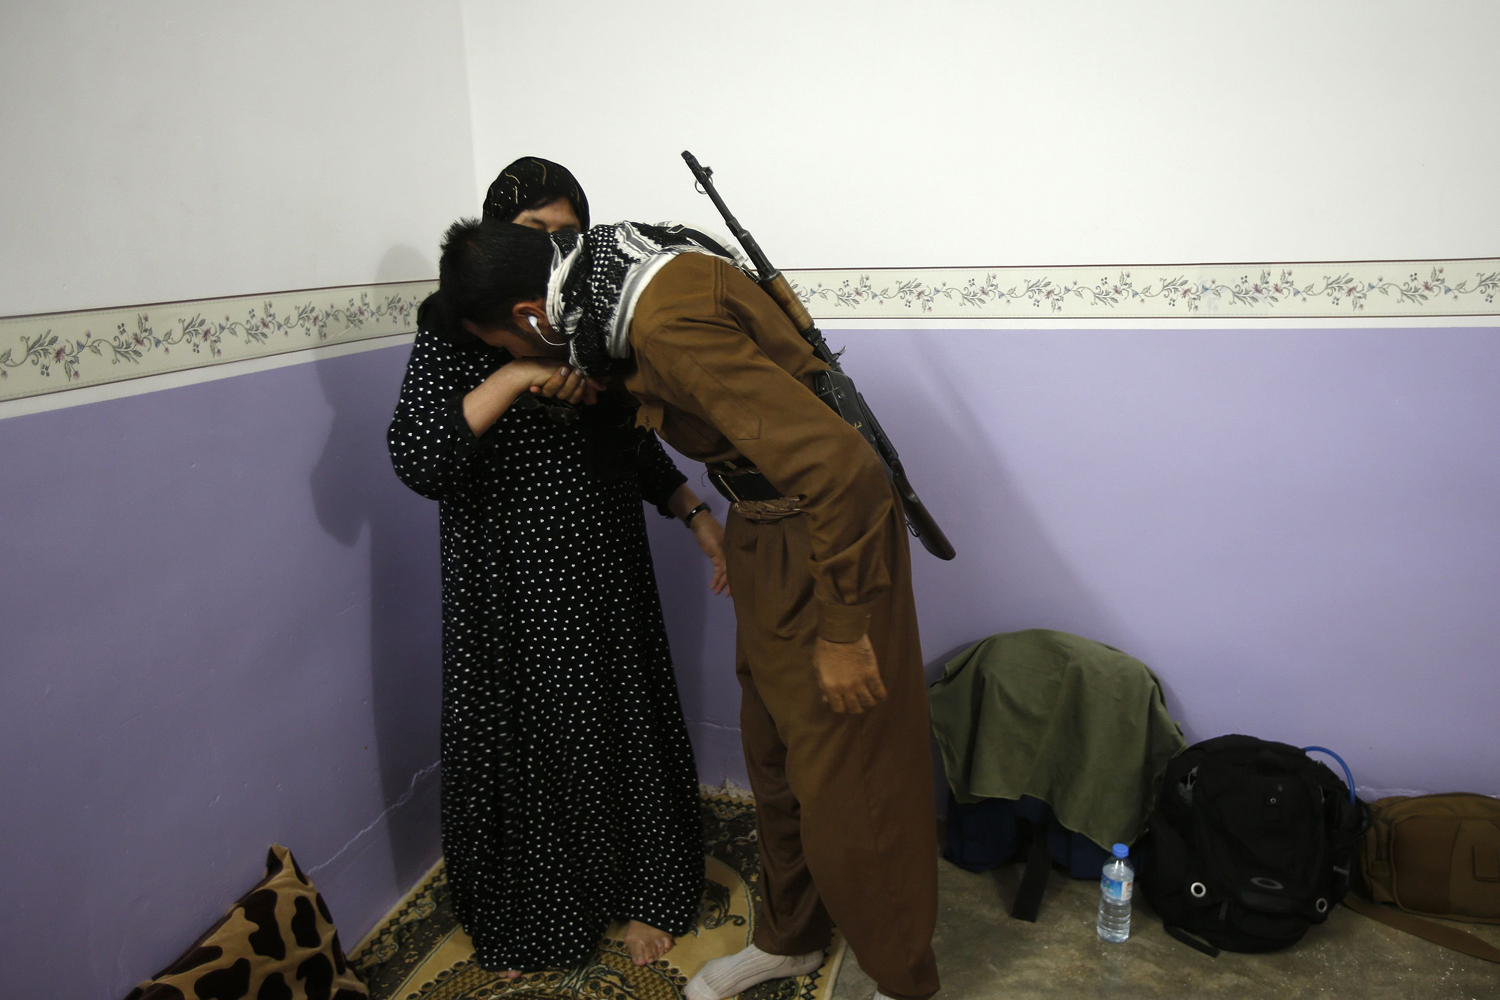 Aug. 31, 2014. A mother says goodbye to her son, a volunteer in the Kurdish peshmerga forces, as he prepares to leave home for the front line near Tuz Khurmatu, northeast of Tikrit city.